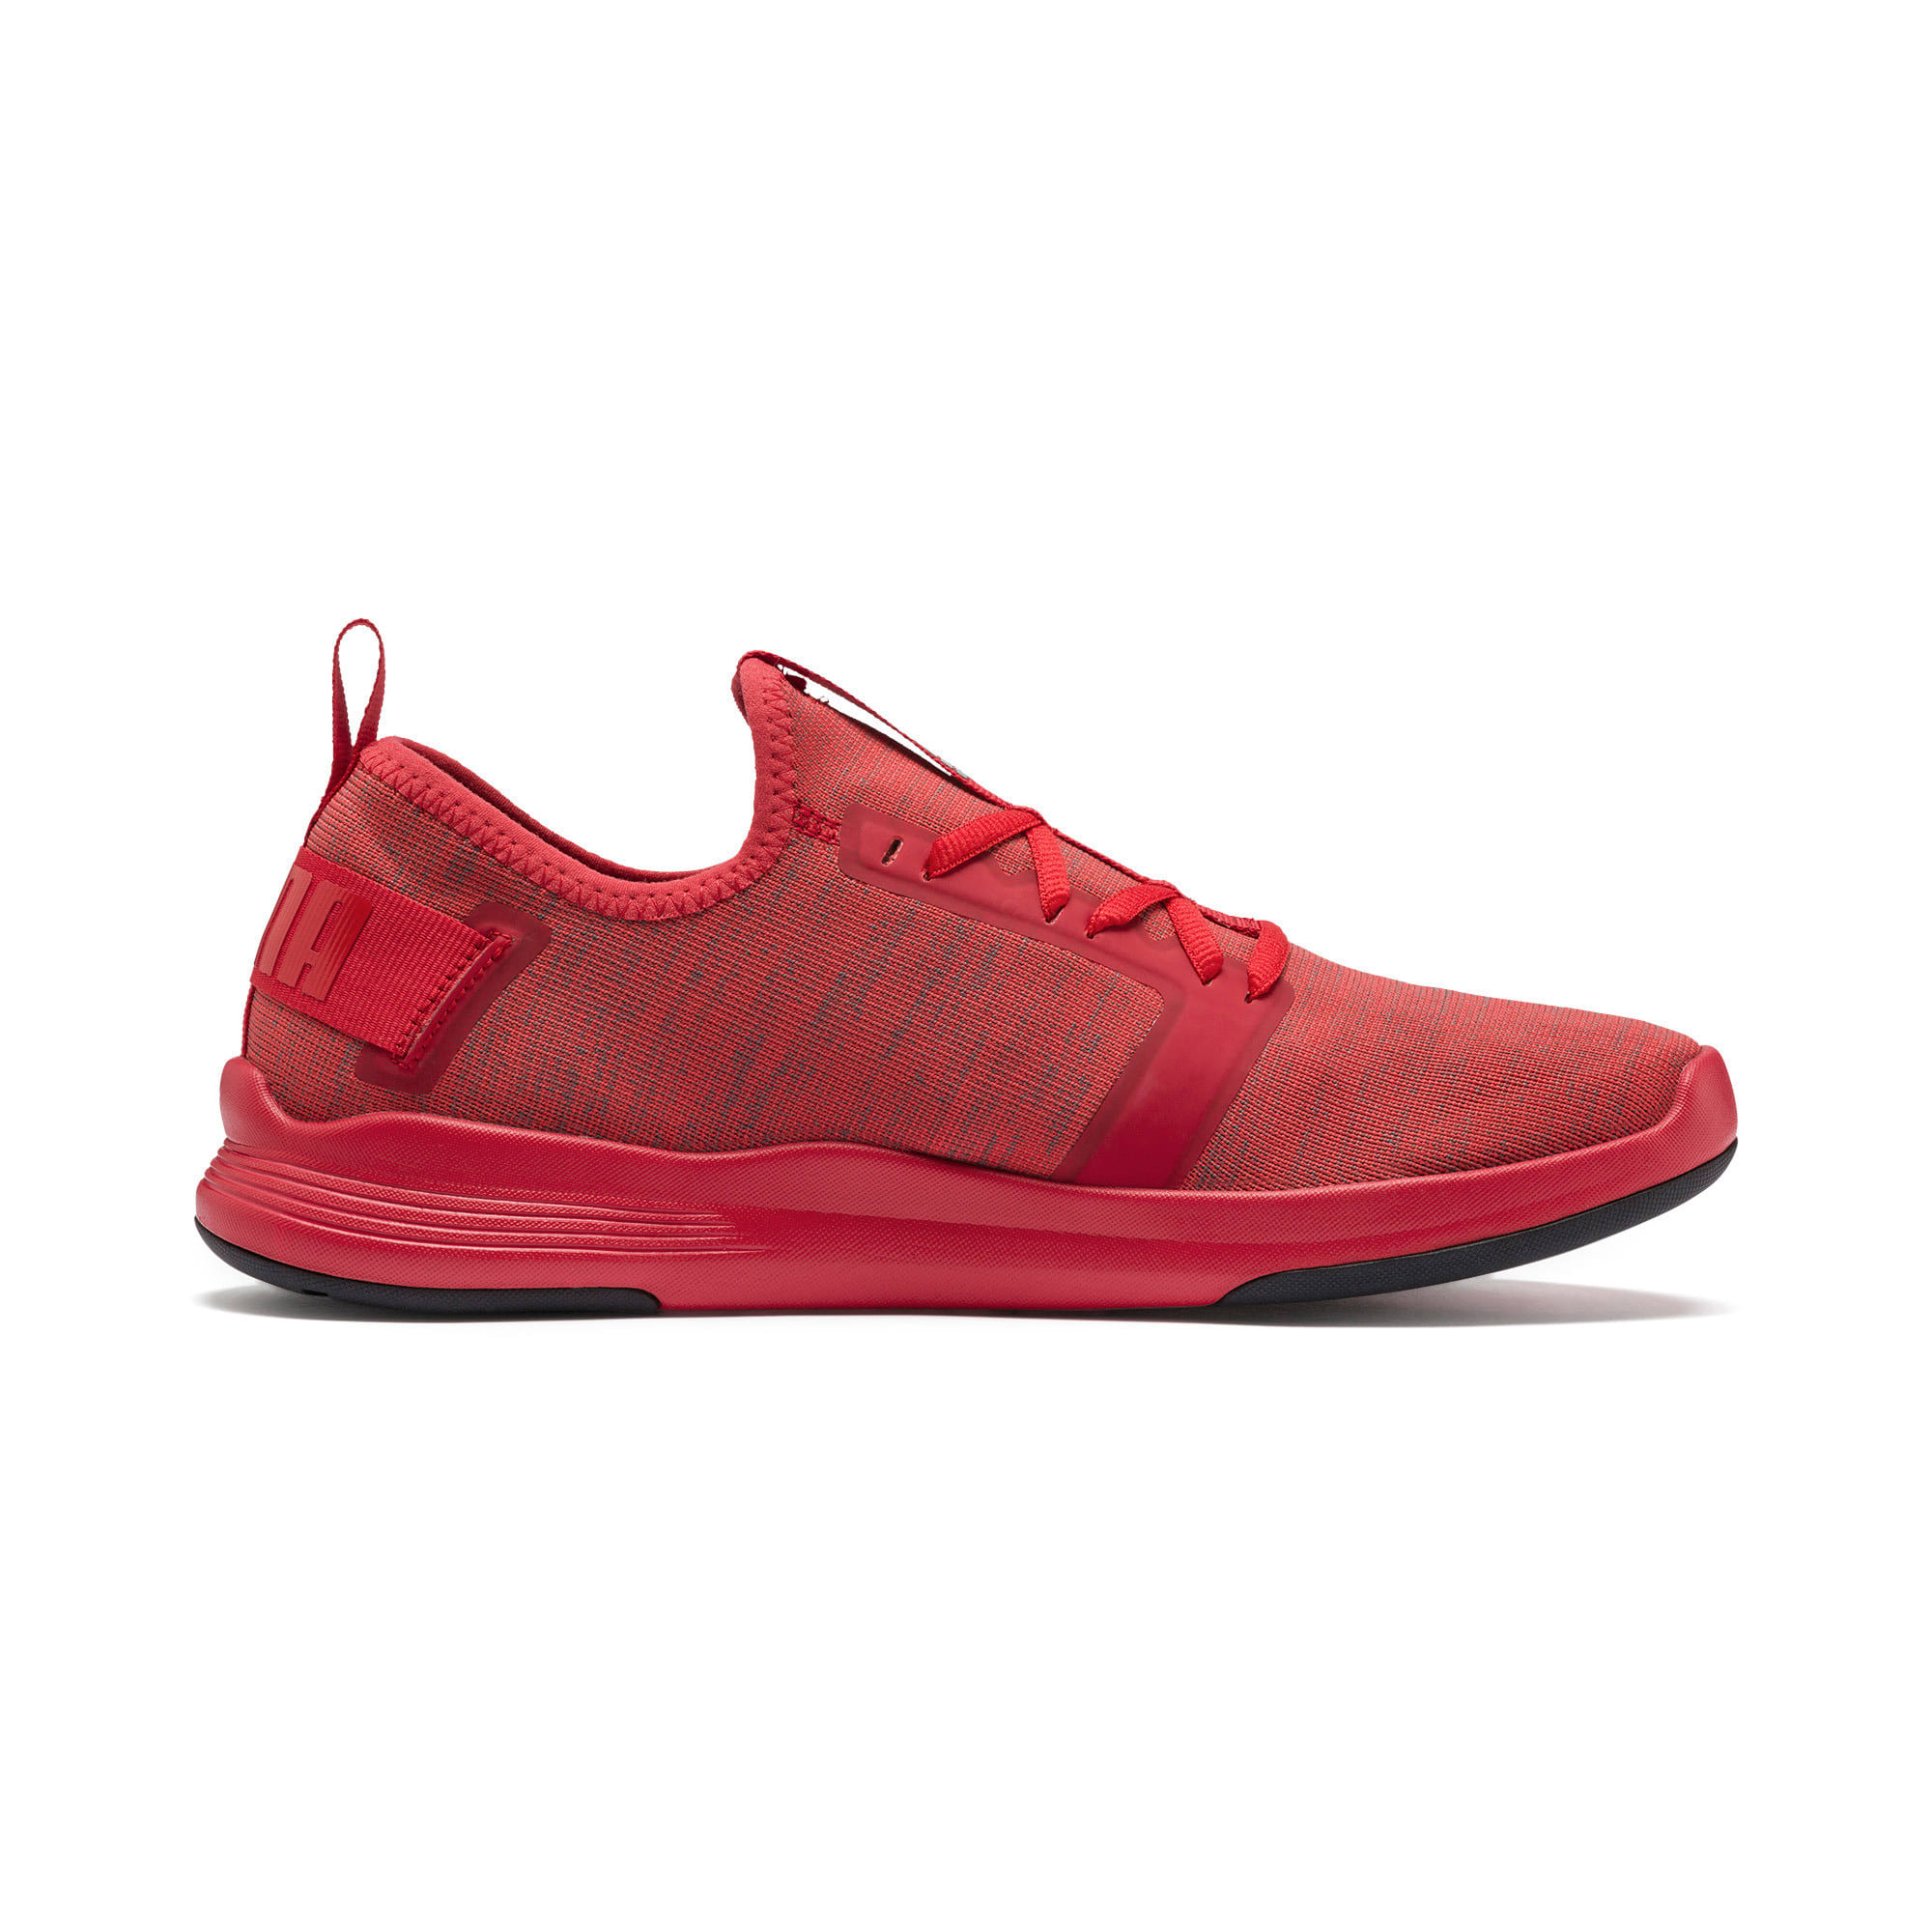 Thumbnail 7 of IGNITE Contender Knit Men's Running Shoes, Ribbon Red-Puma Black, medium-IND